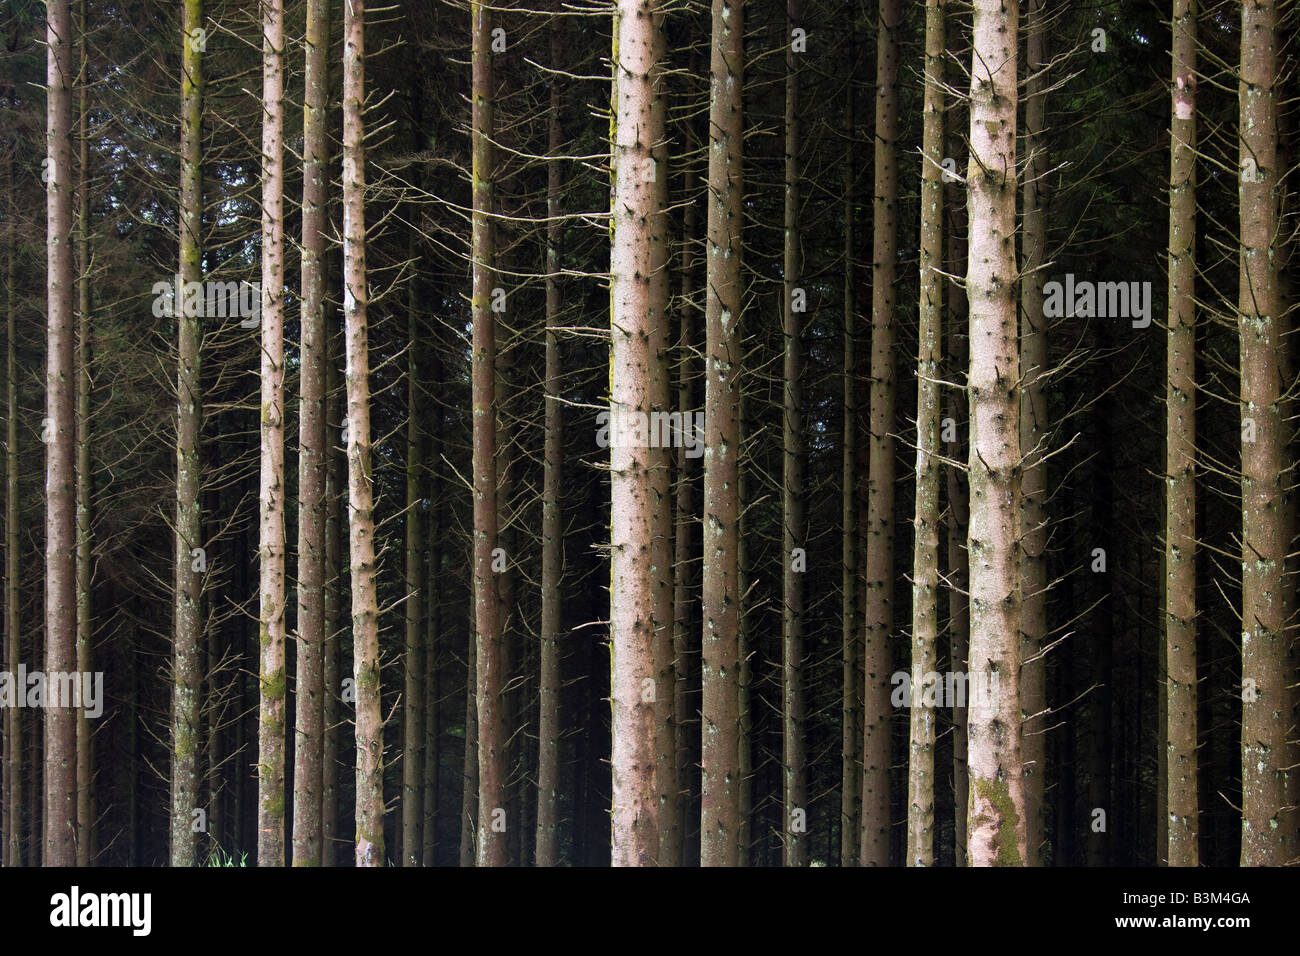 Pine trees in a coniferous forest in the north of Scotland - Stock Image